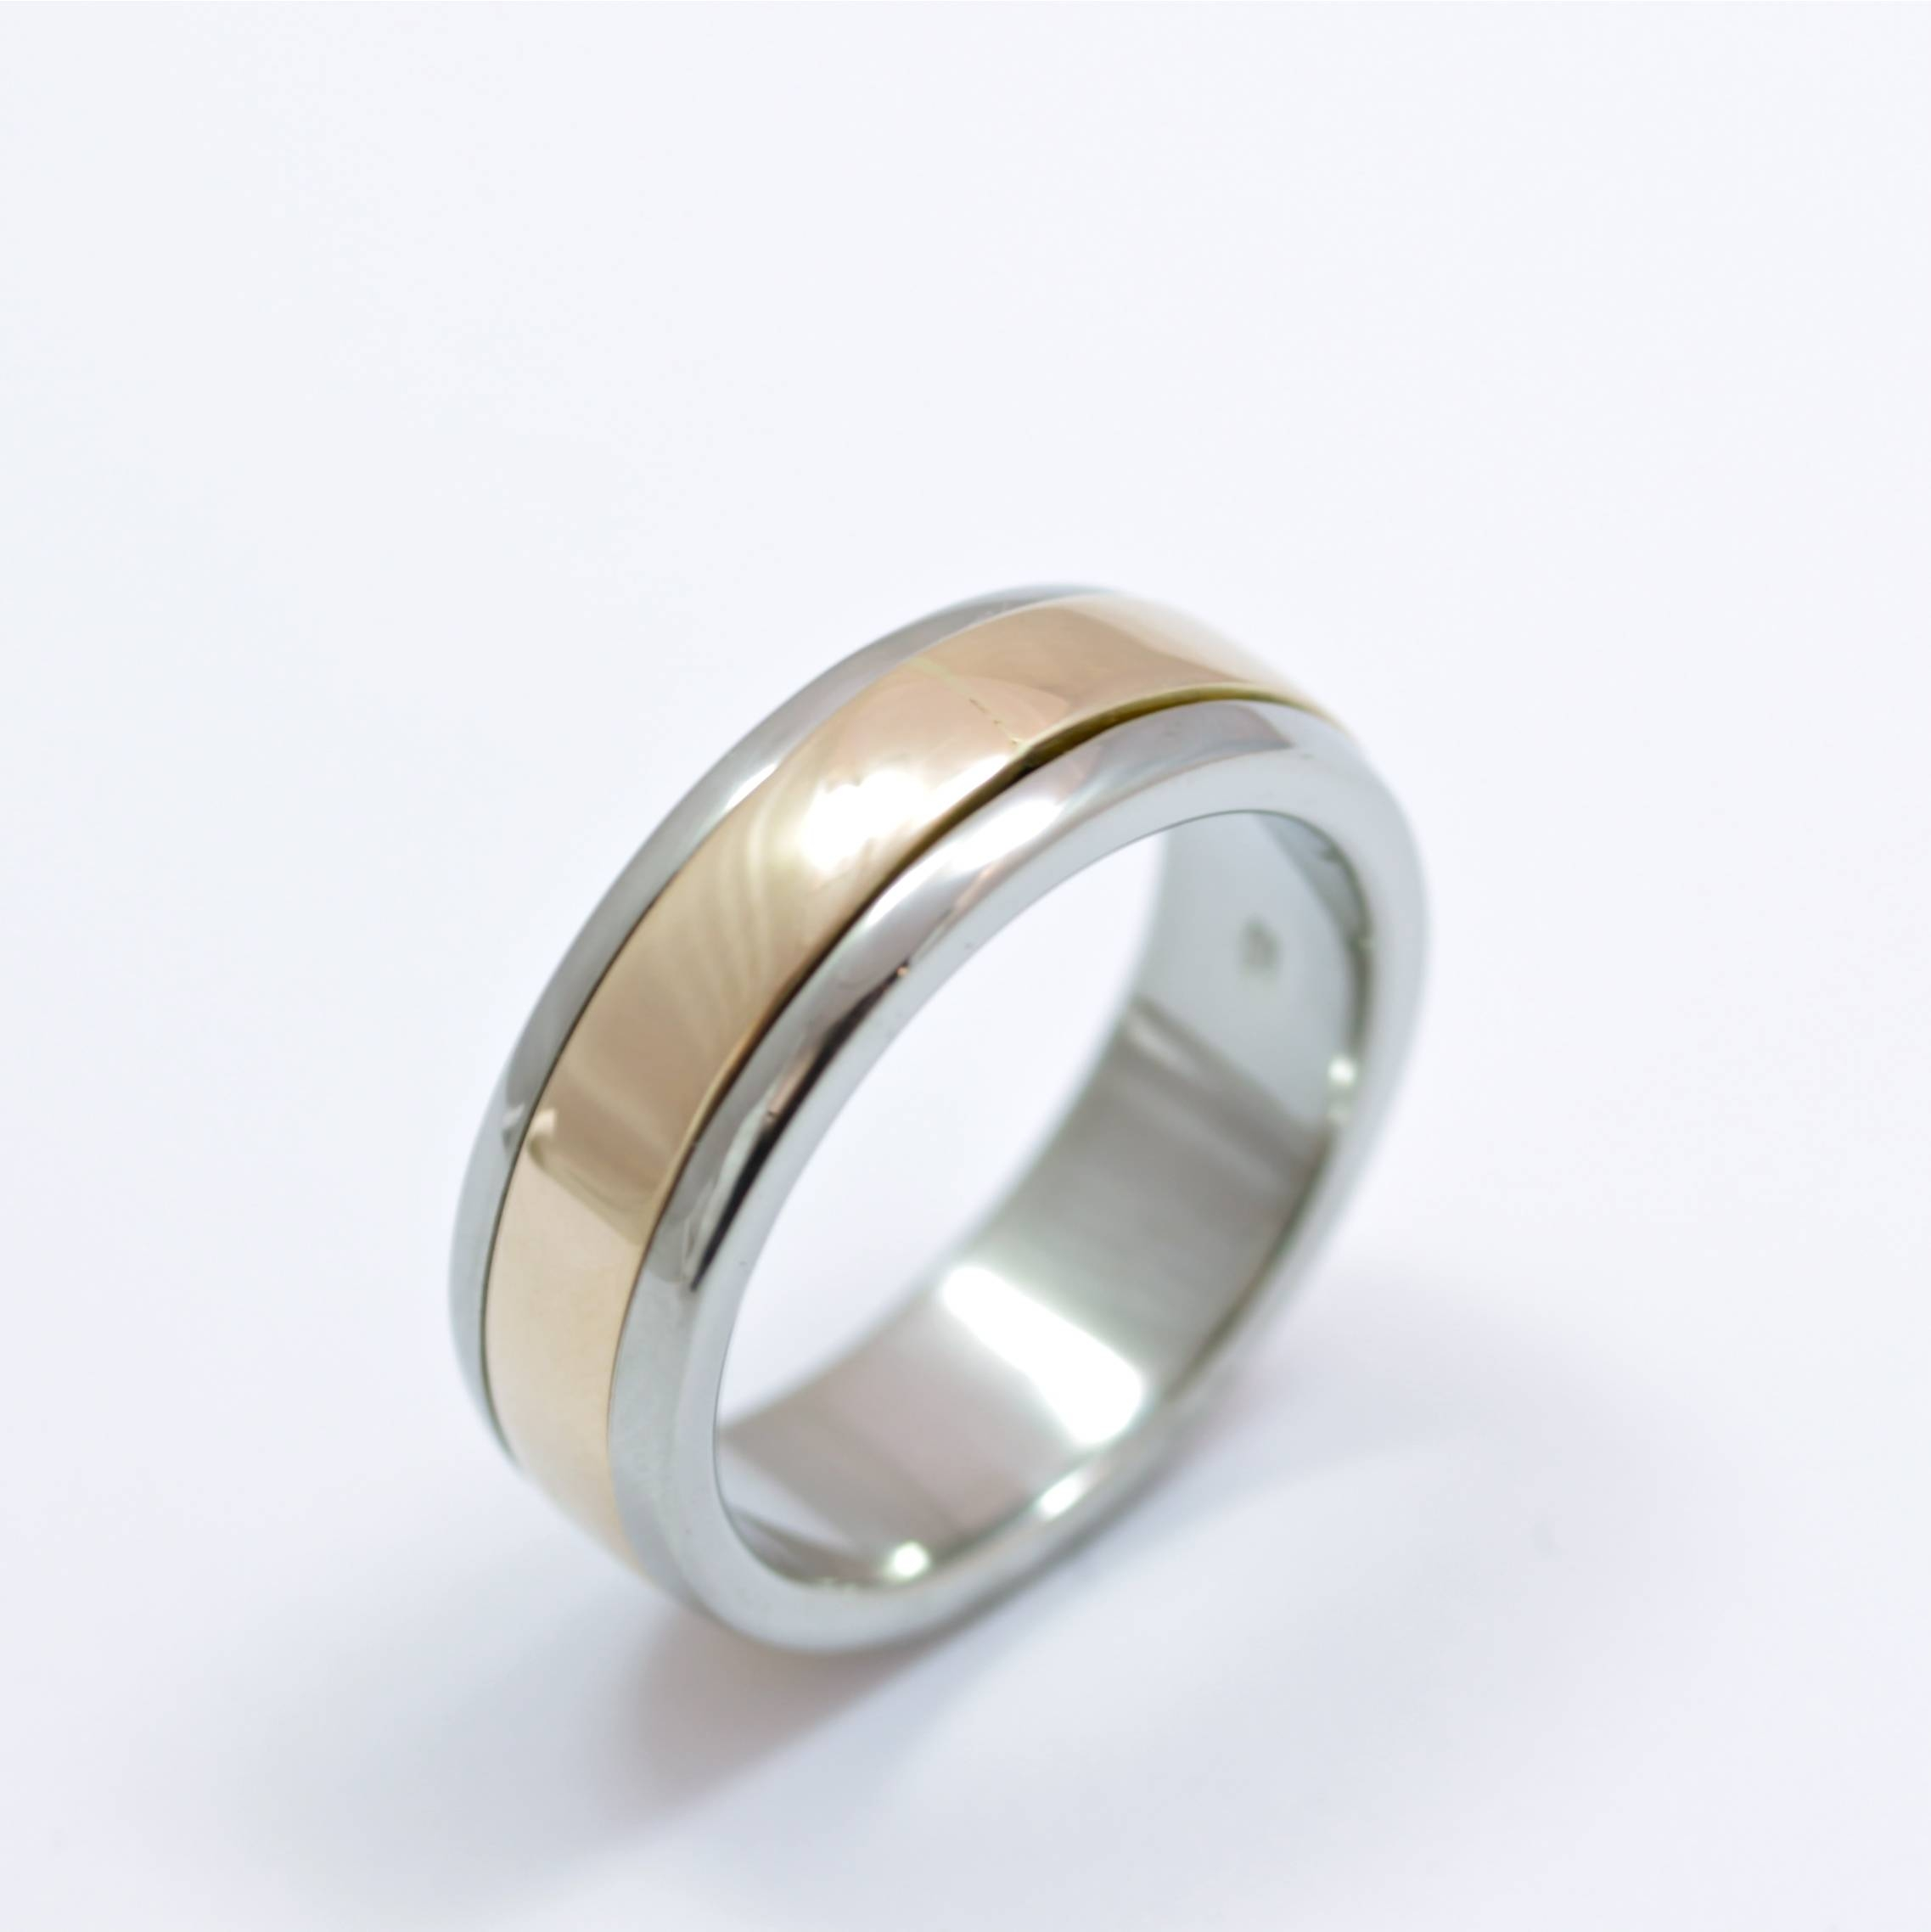 ring questions wedding got of the answers groom to commandments we all rings your content ve